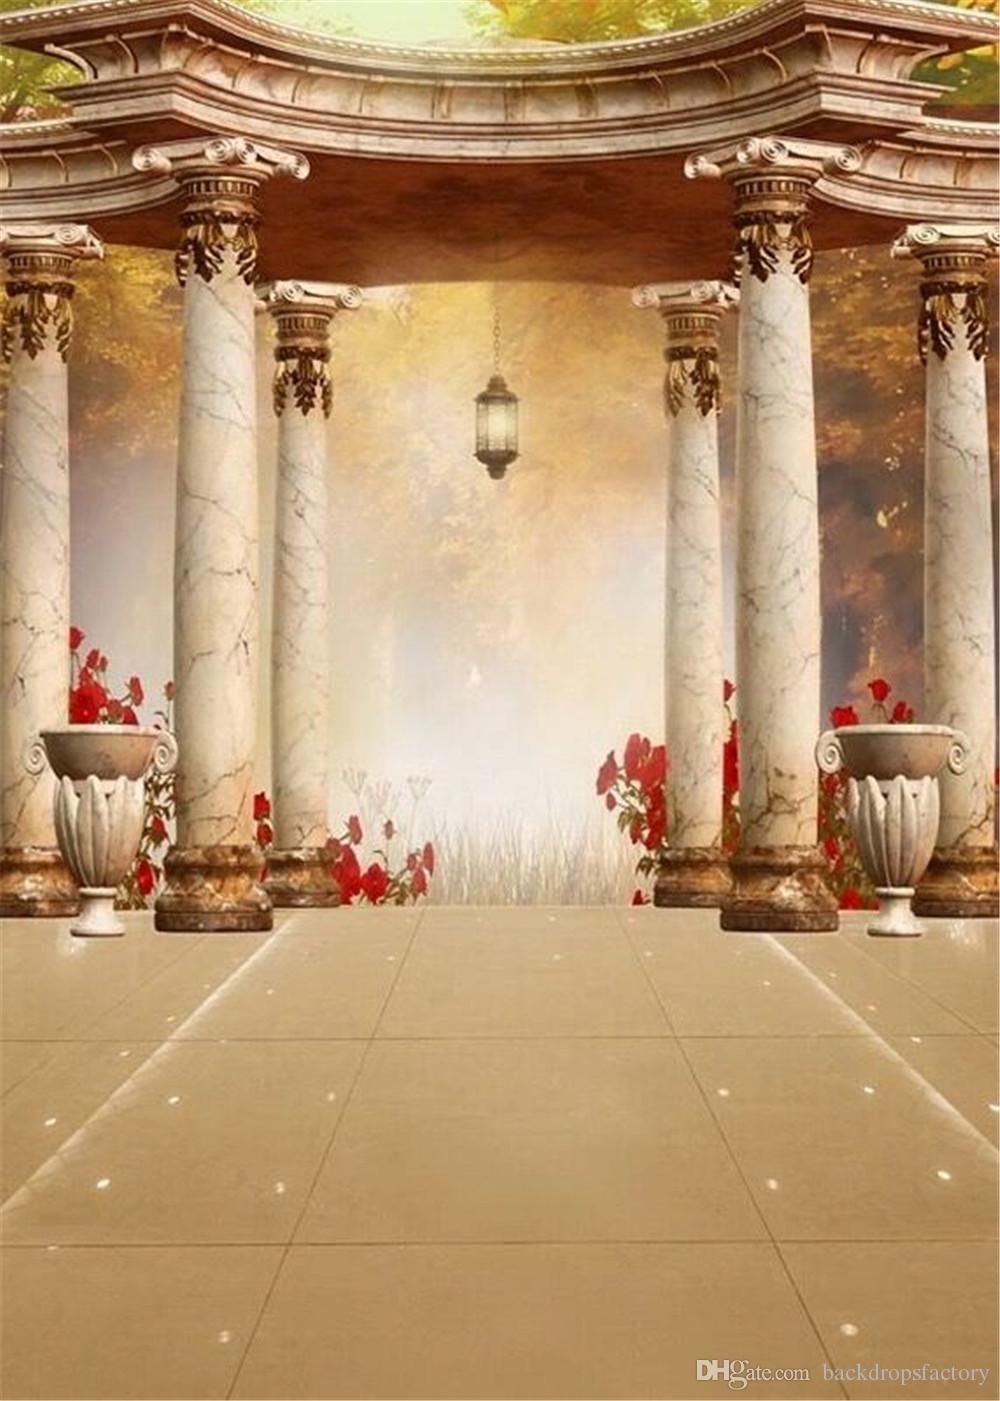 2019 Vintage Pavilion Stone Pillars Wedding Backgrounds For Photo